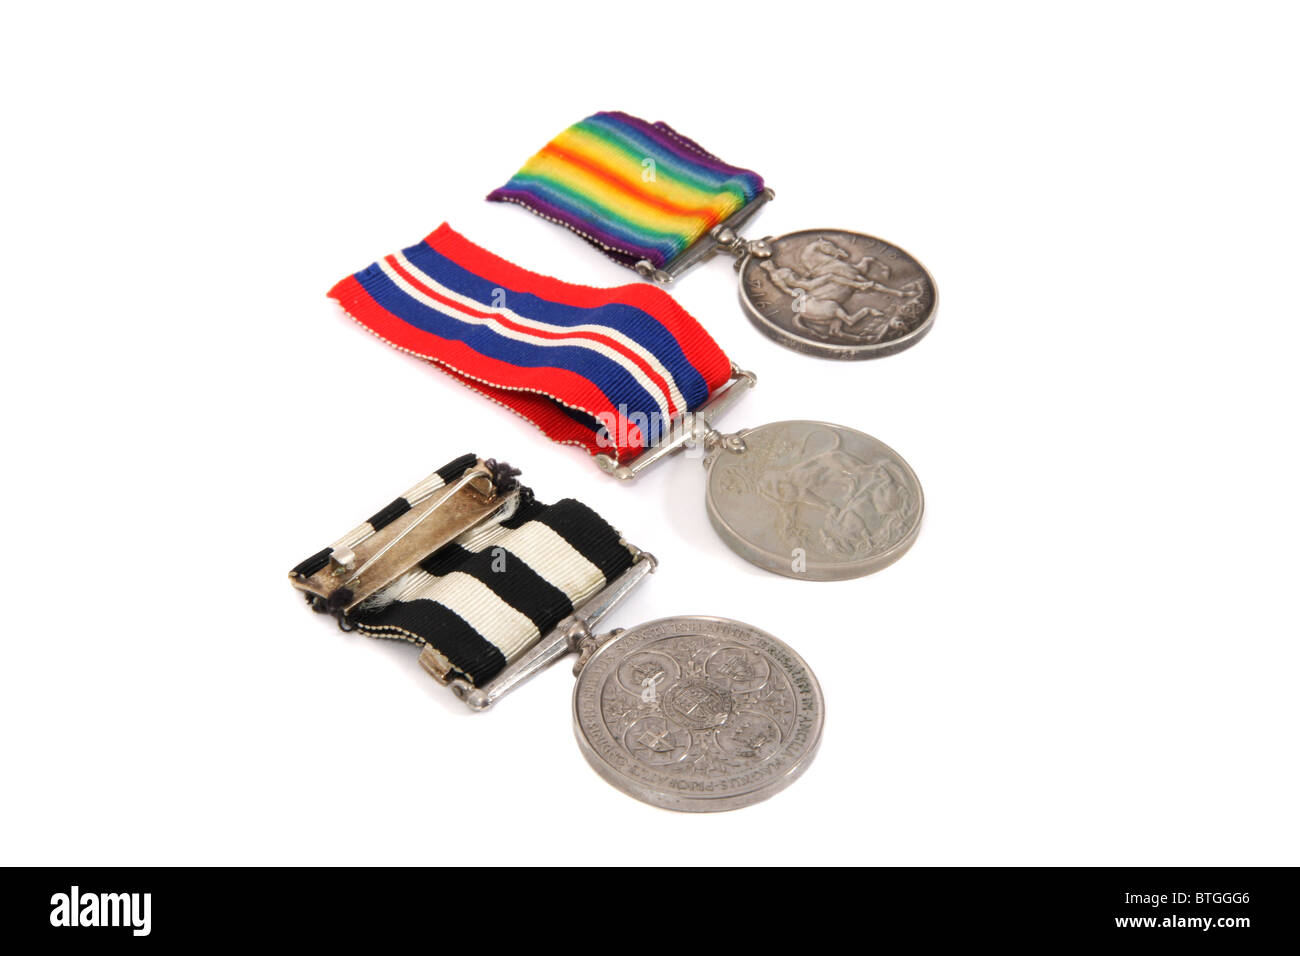 British First and Second World War medals - Stock Image